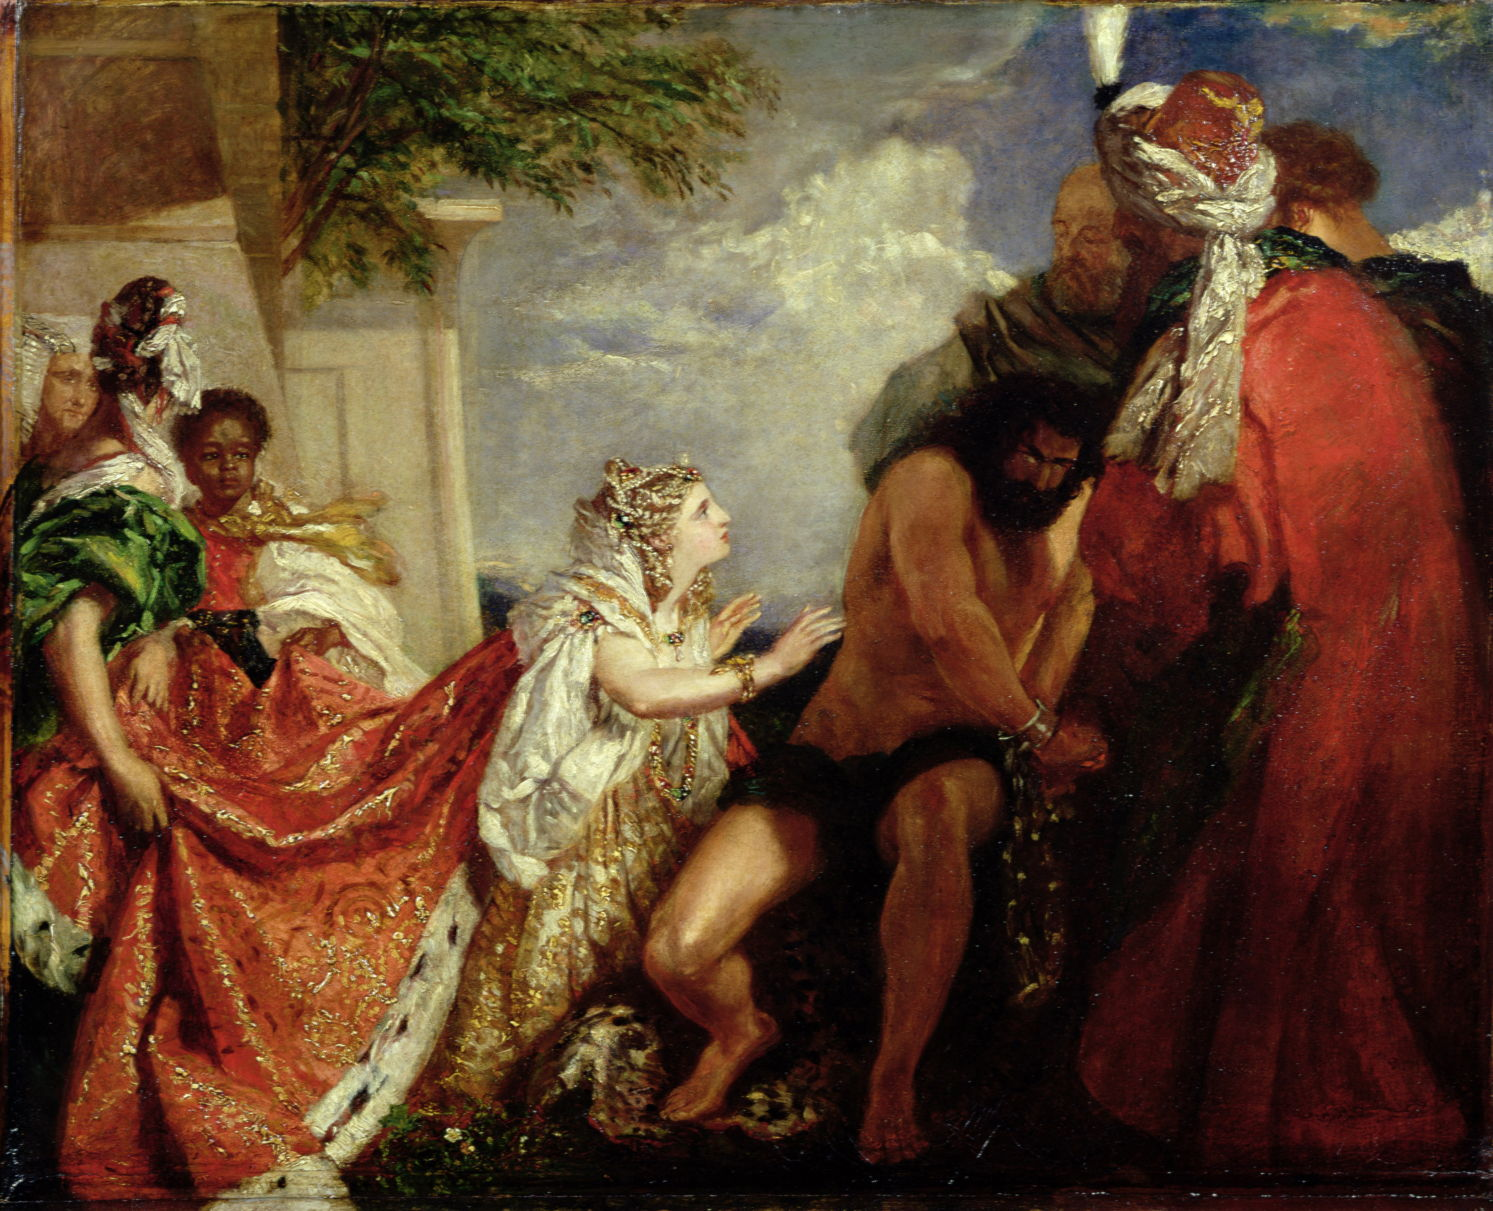 the story in paintings index of well known narratives 3 biblical